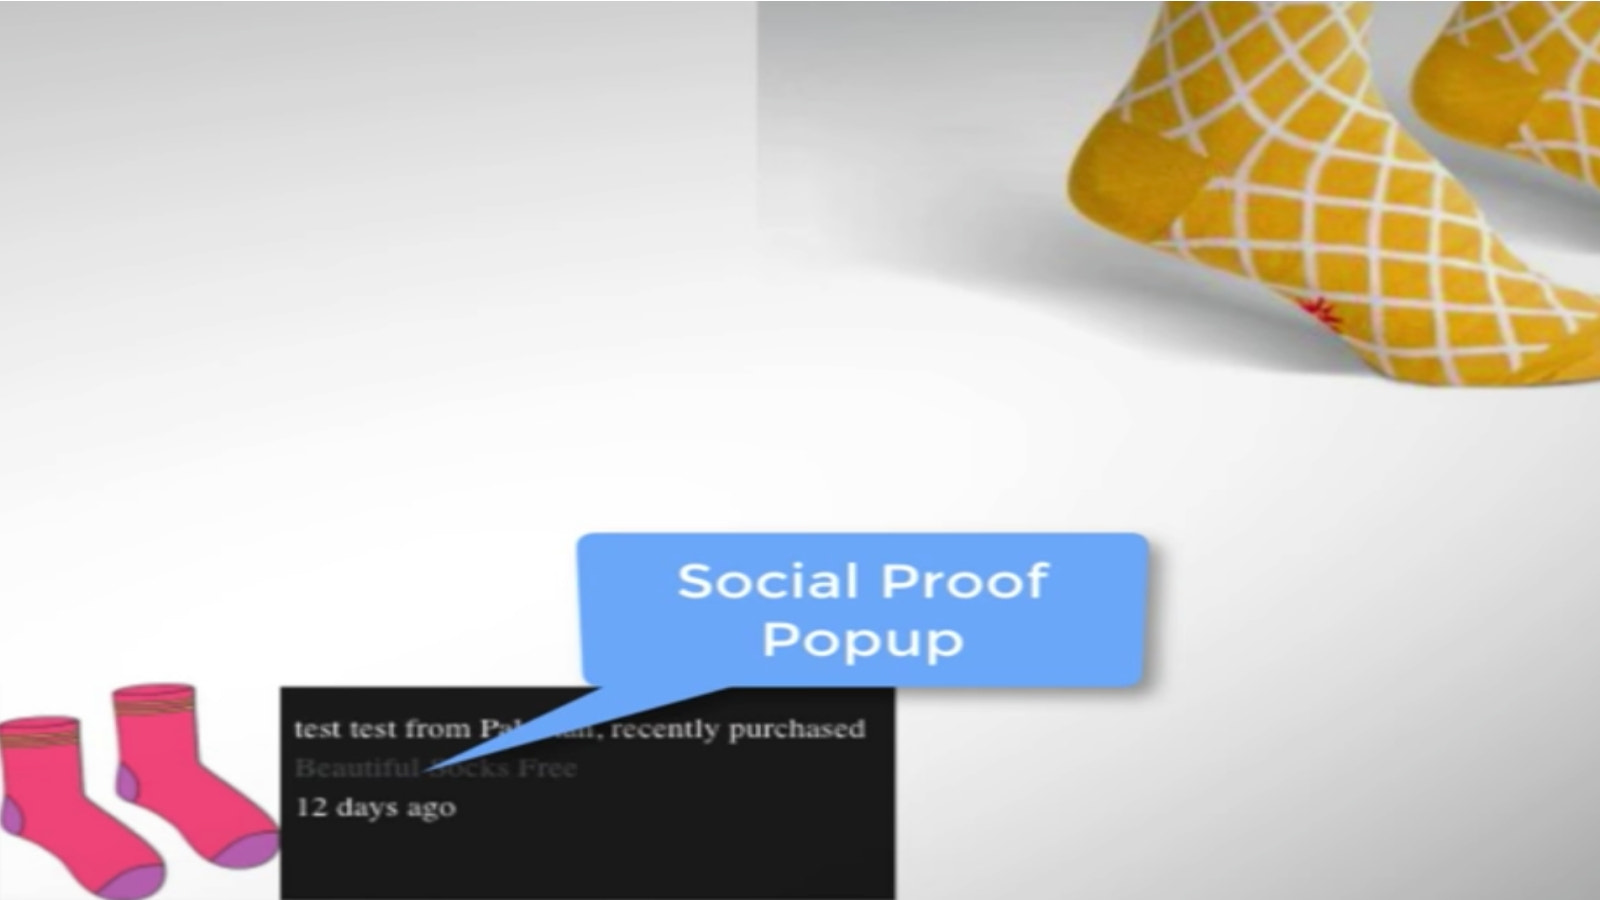 Social Proof Products Purchased By - Pop Up